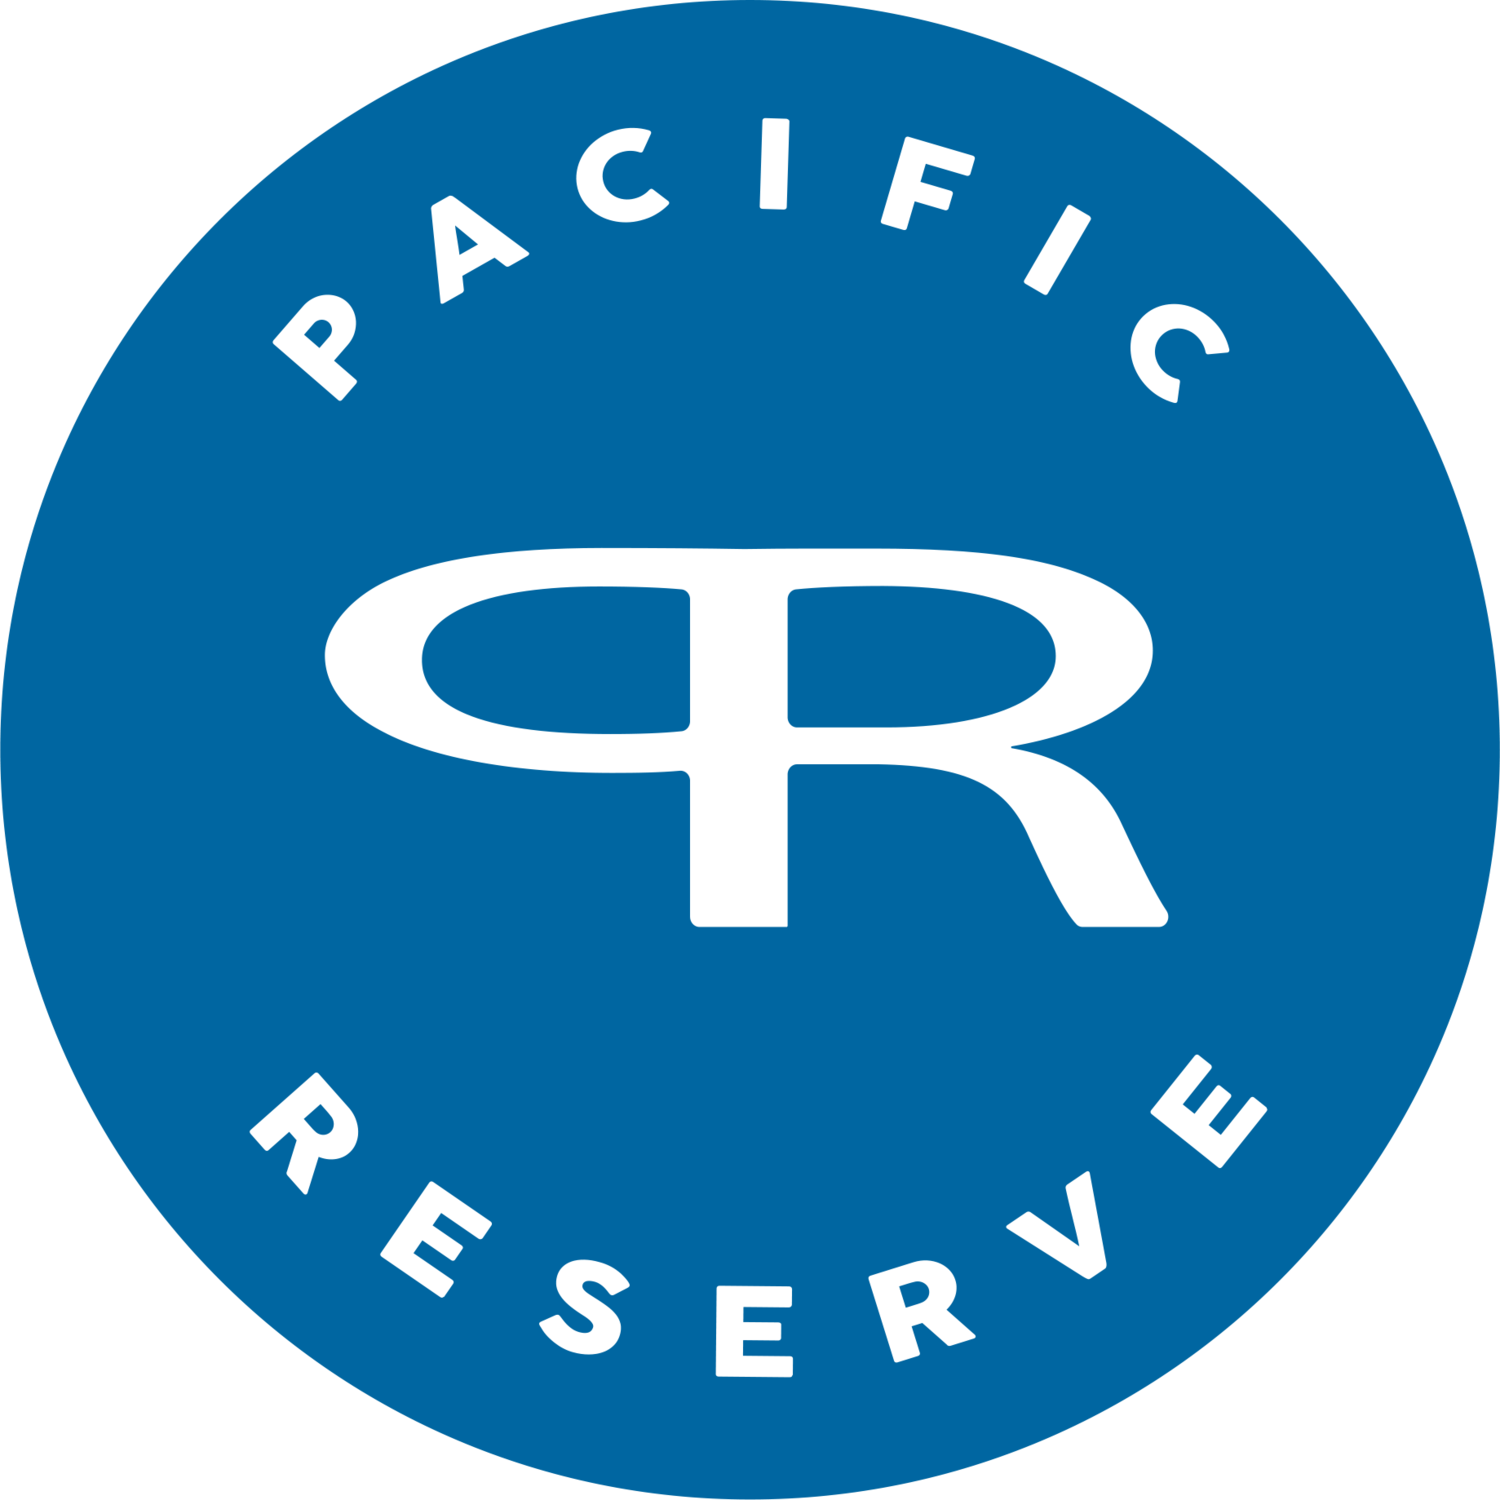 Pacific_Reserve_logo.png